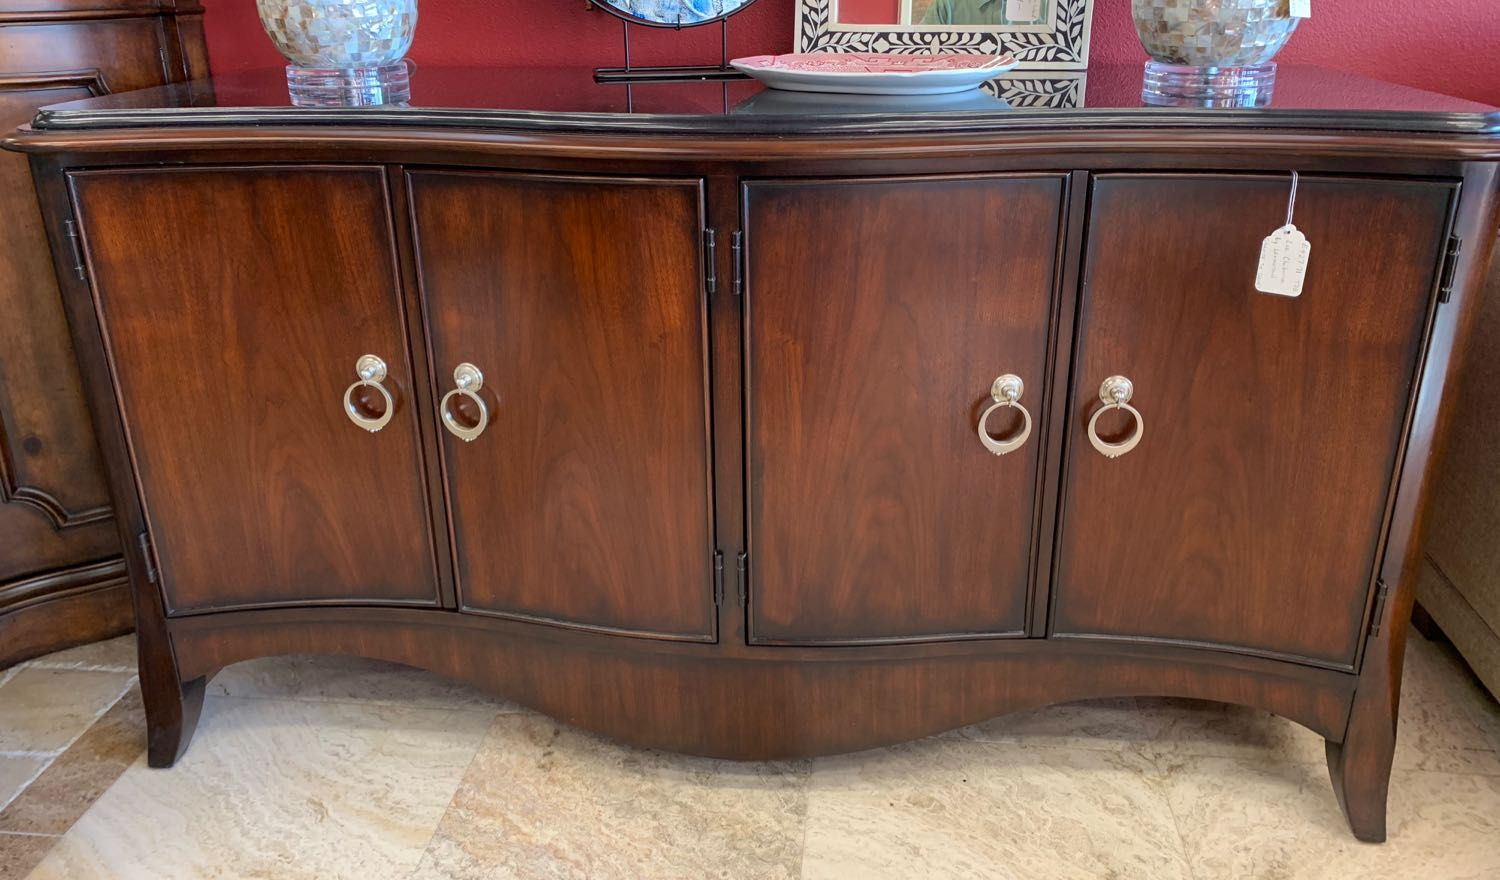 Buffet Designed By Liz Claiborne And Made By Lexington The Generous Sideboard Has A Curvaceous Front And Wea Furniture Home Decor Trends Consignment Furniture